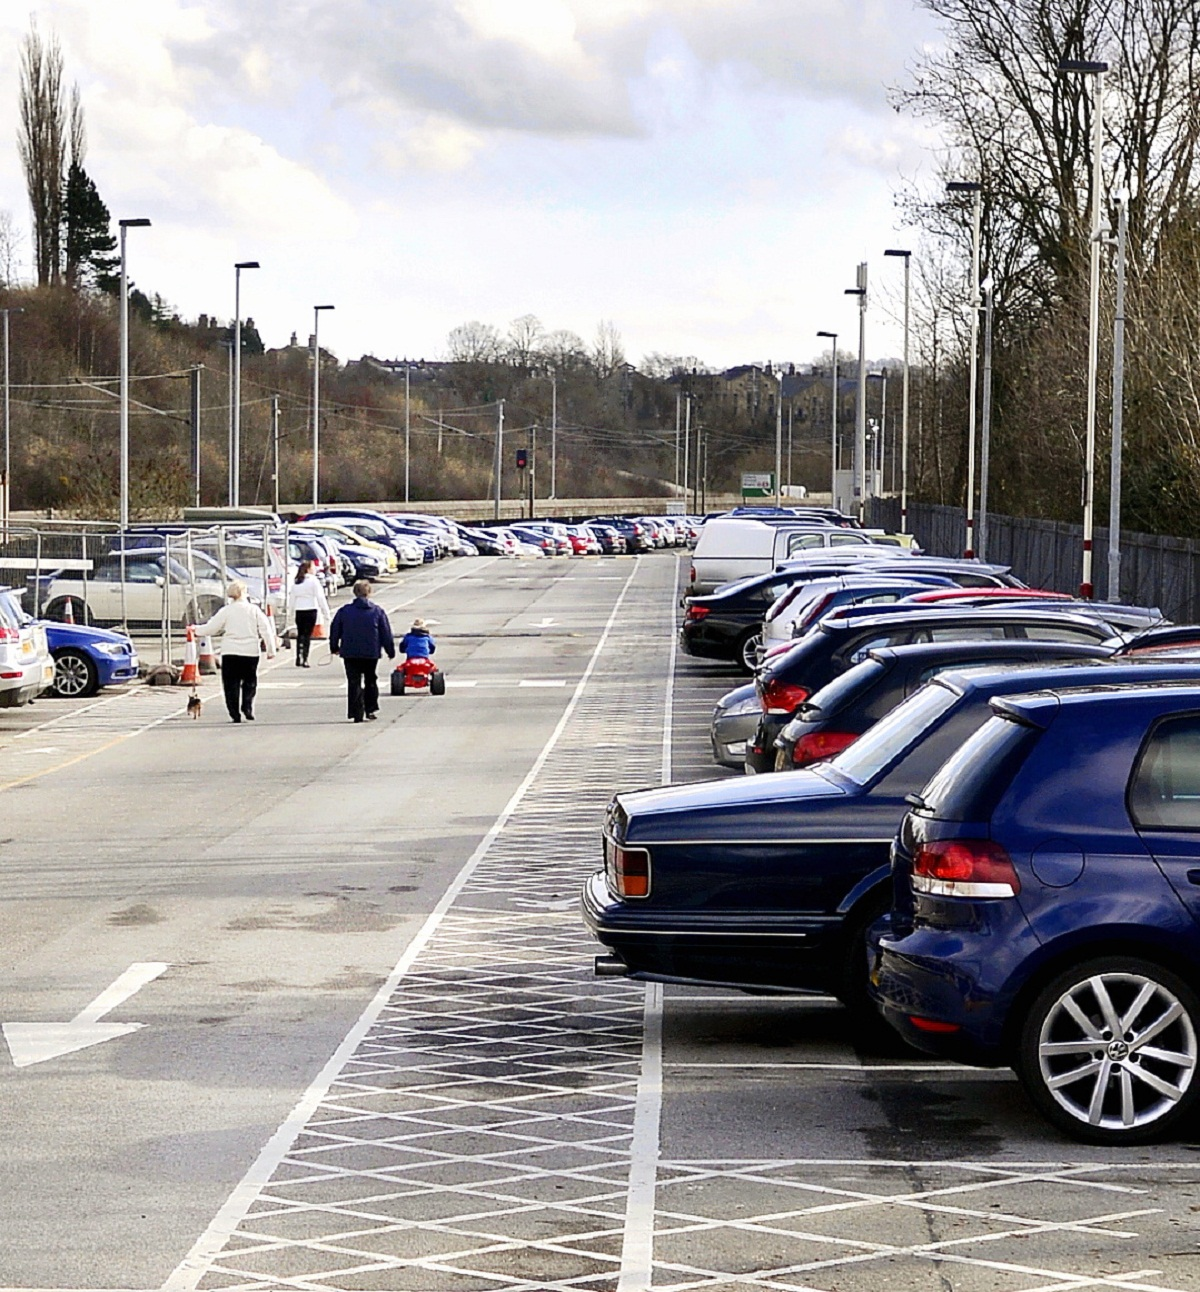 Crossflatts railway station's busy car park